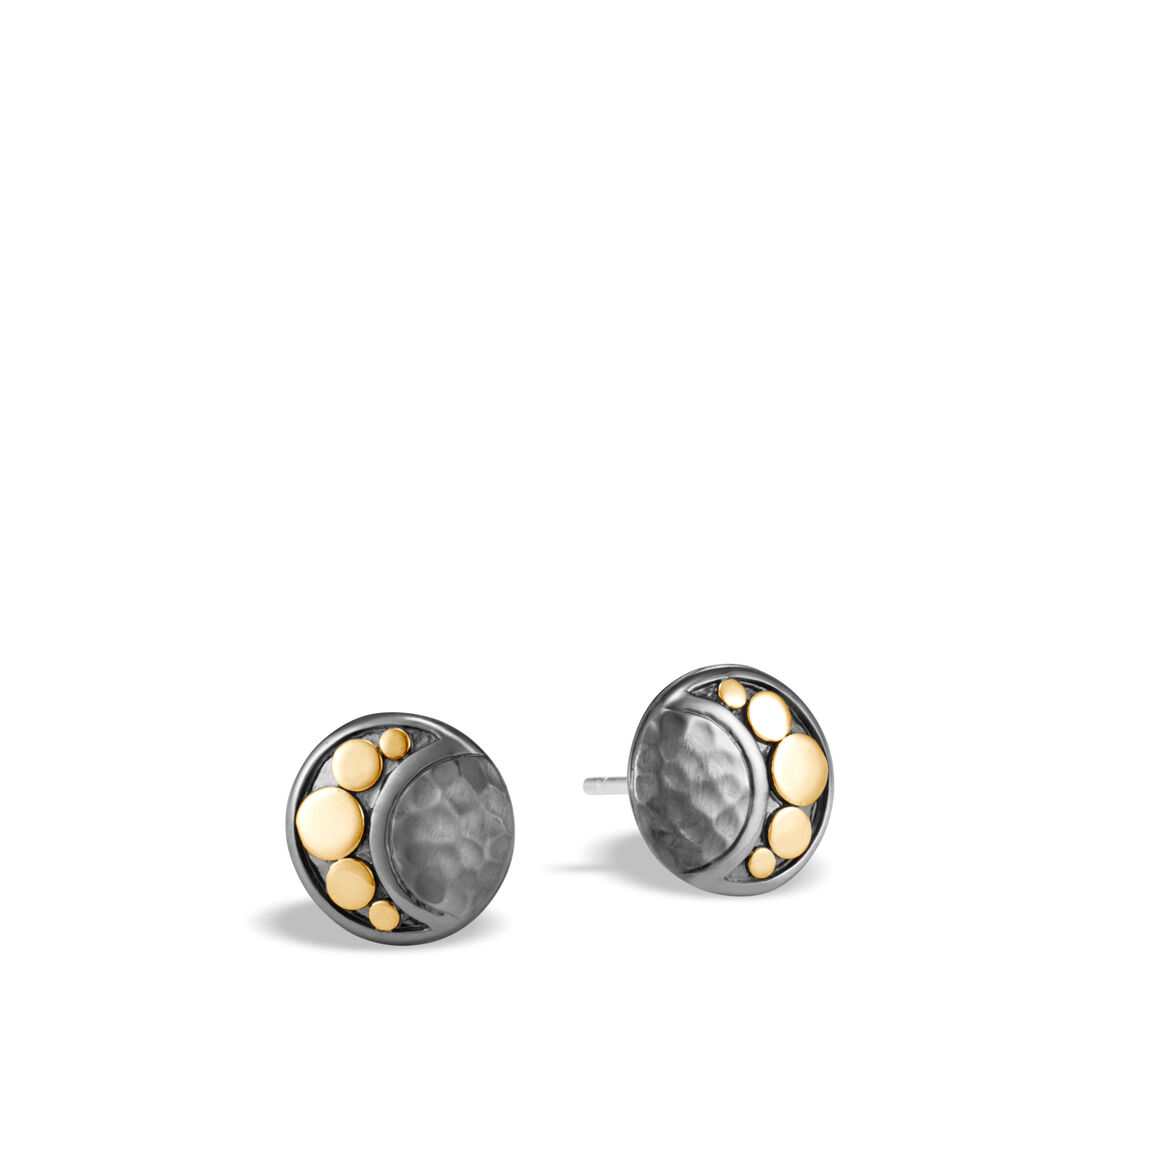 Dot Moon Phase Stud Earring, Hammered Blackened Silver, 18K